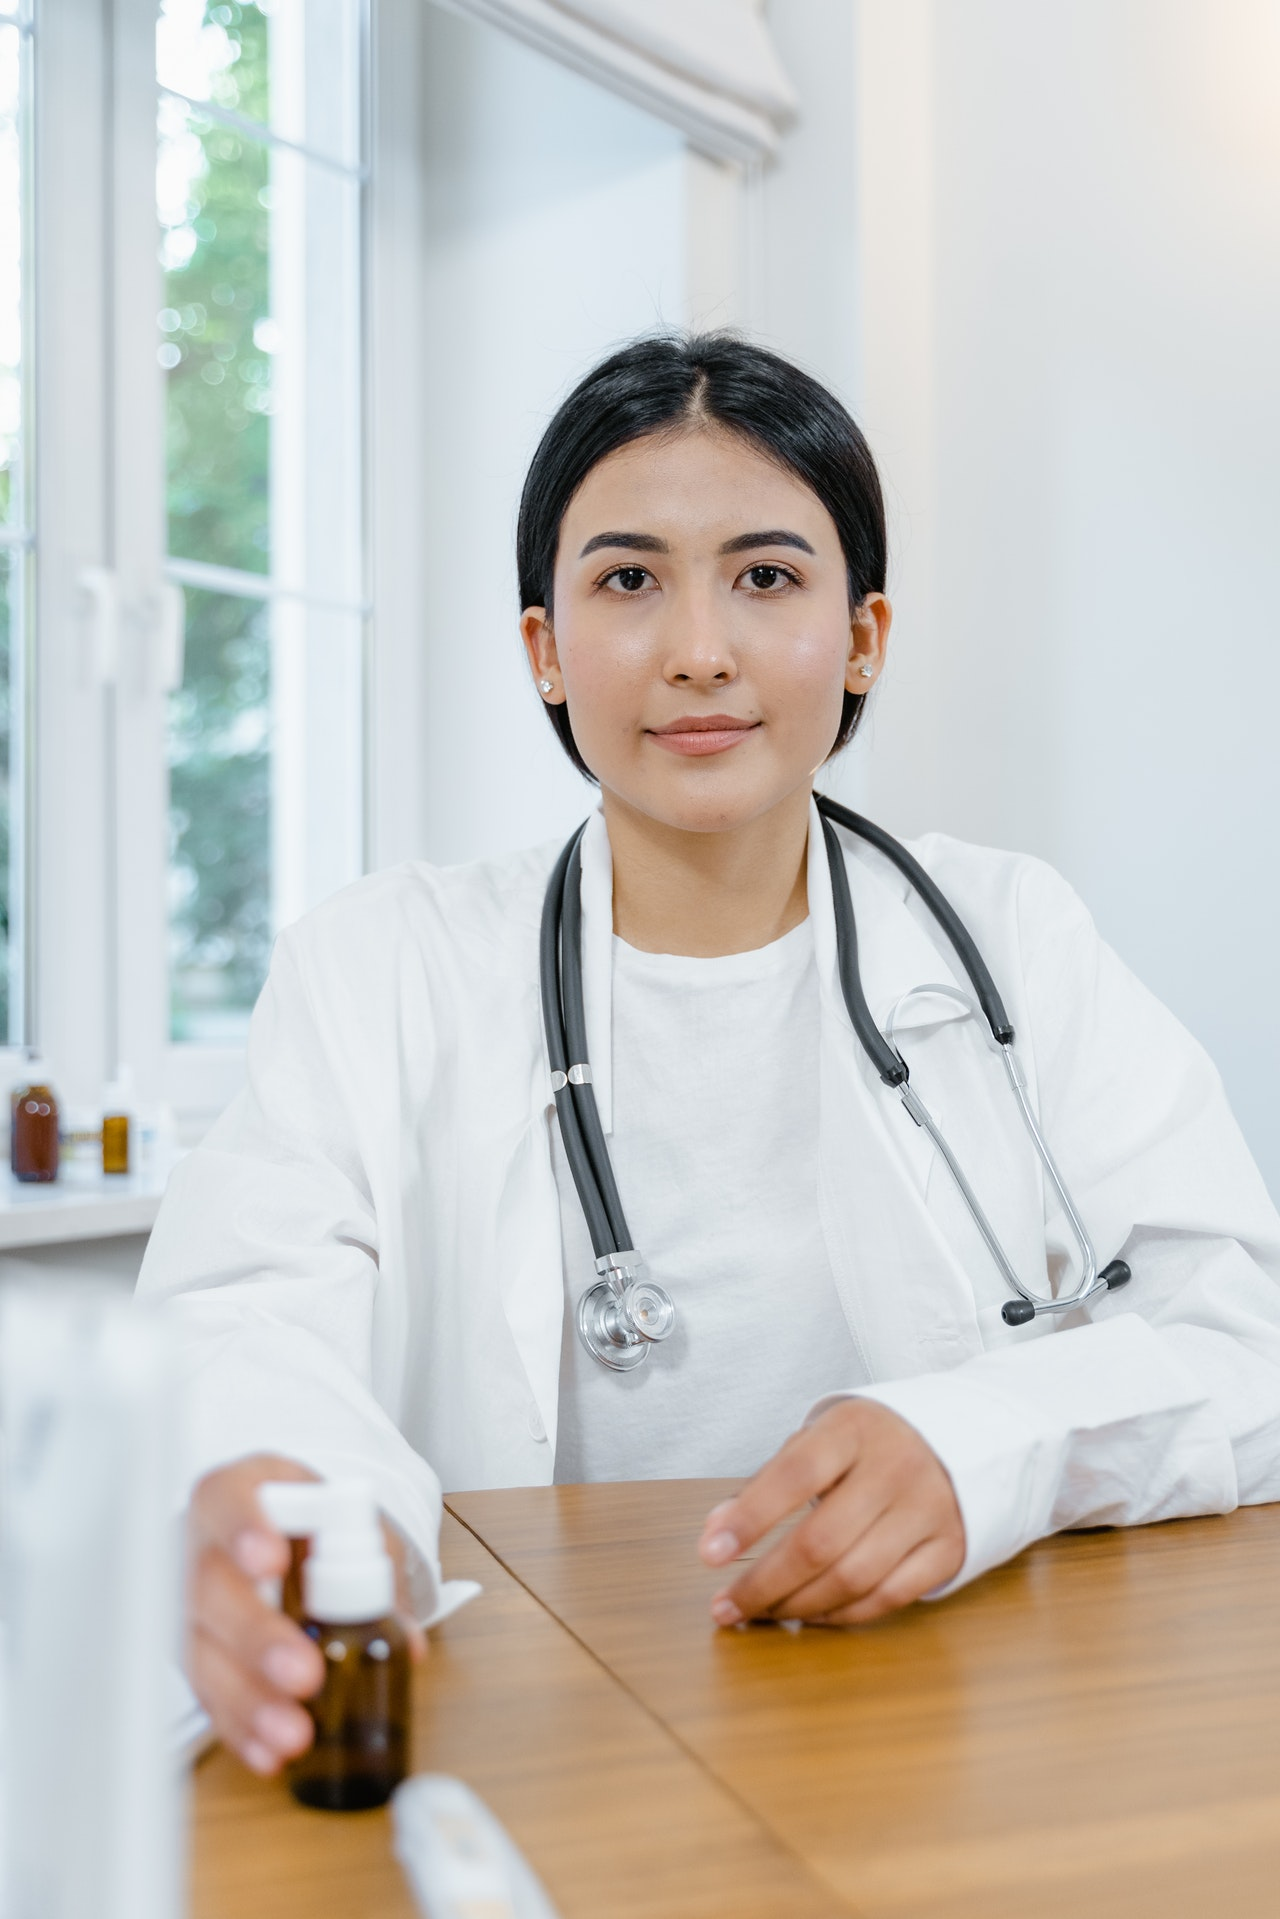 What Are the Best Drugs to be used for Diseases